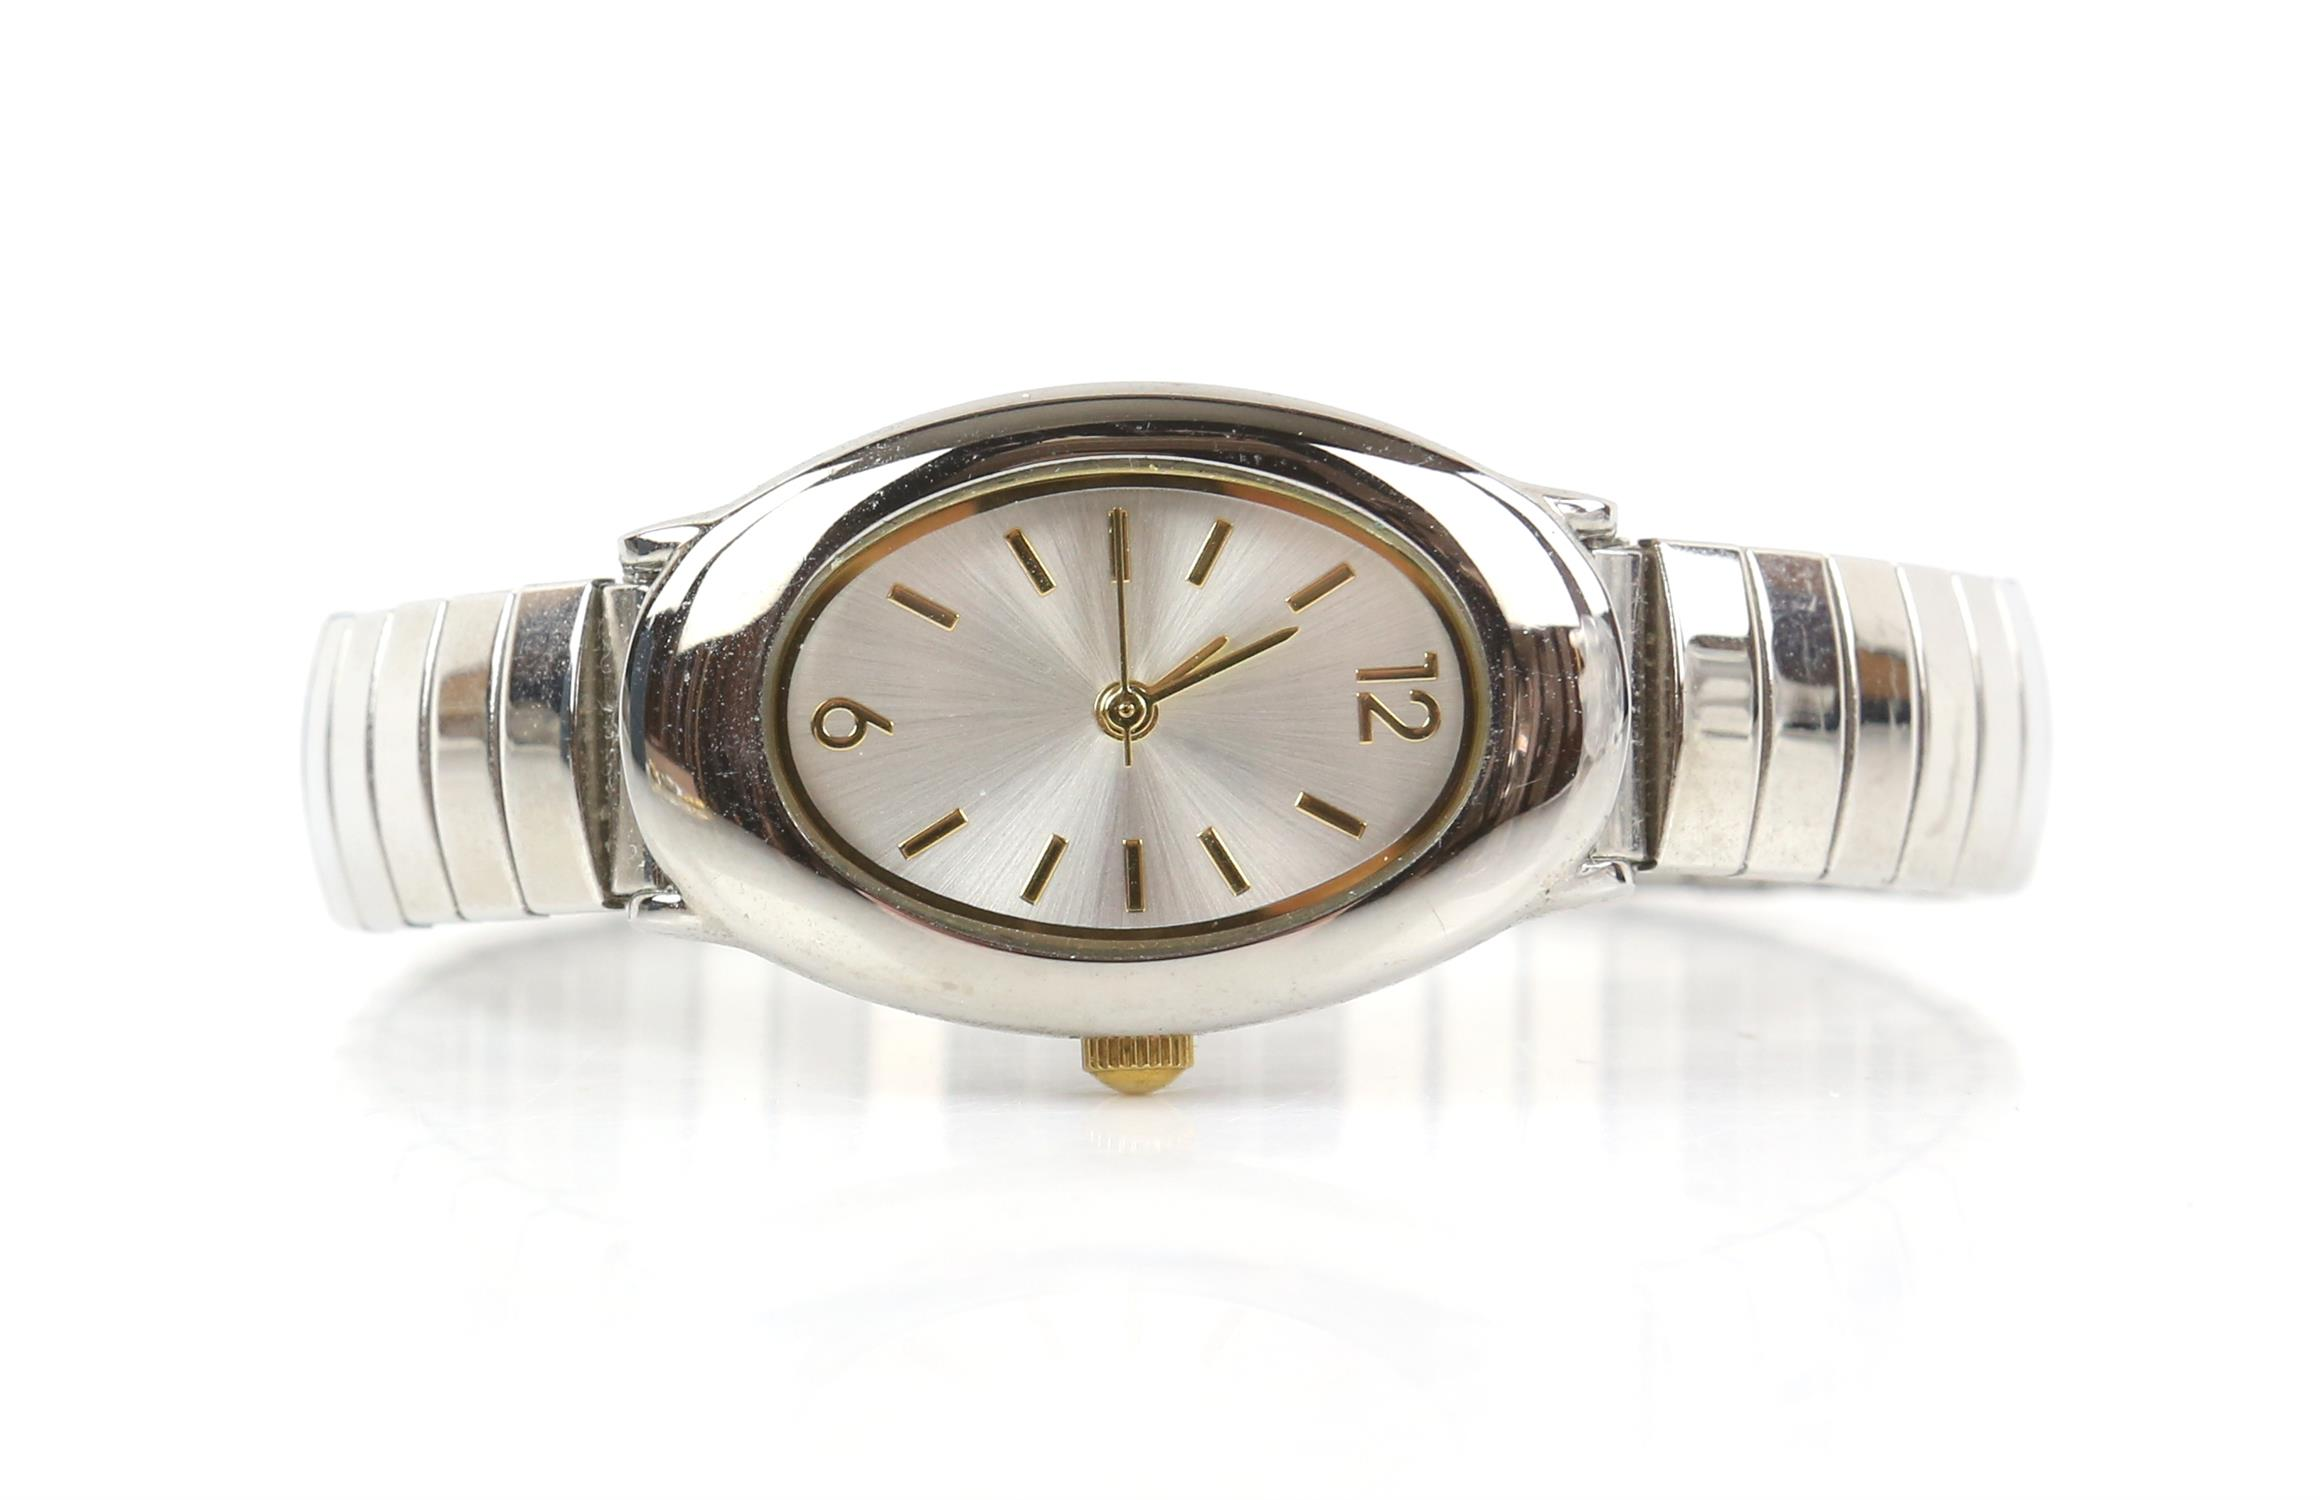 Raymond Weil, A Gentleman's reference 6549 dress watch with white enamel dial, baton hour markers, - Image 10 of 11